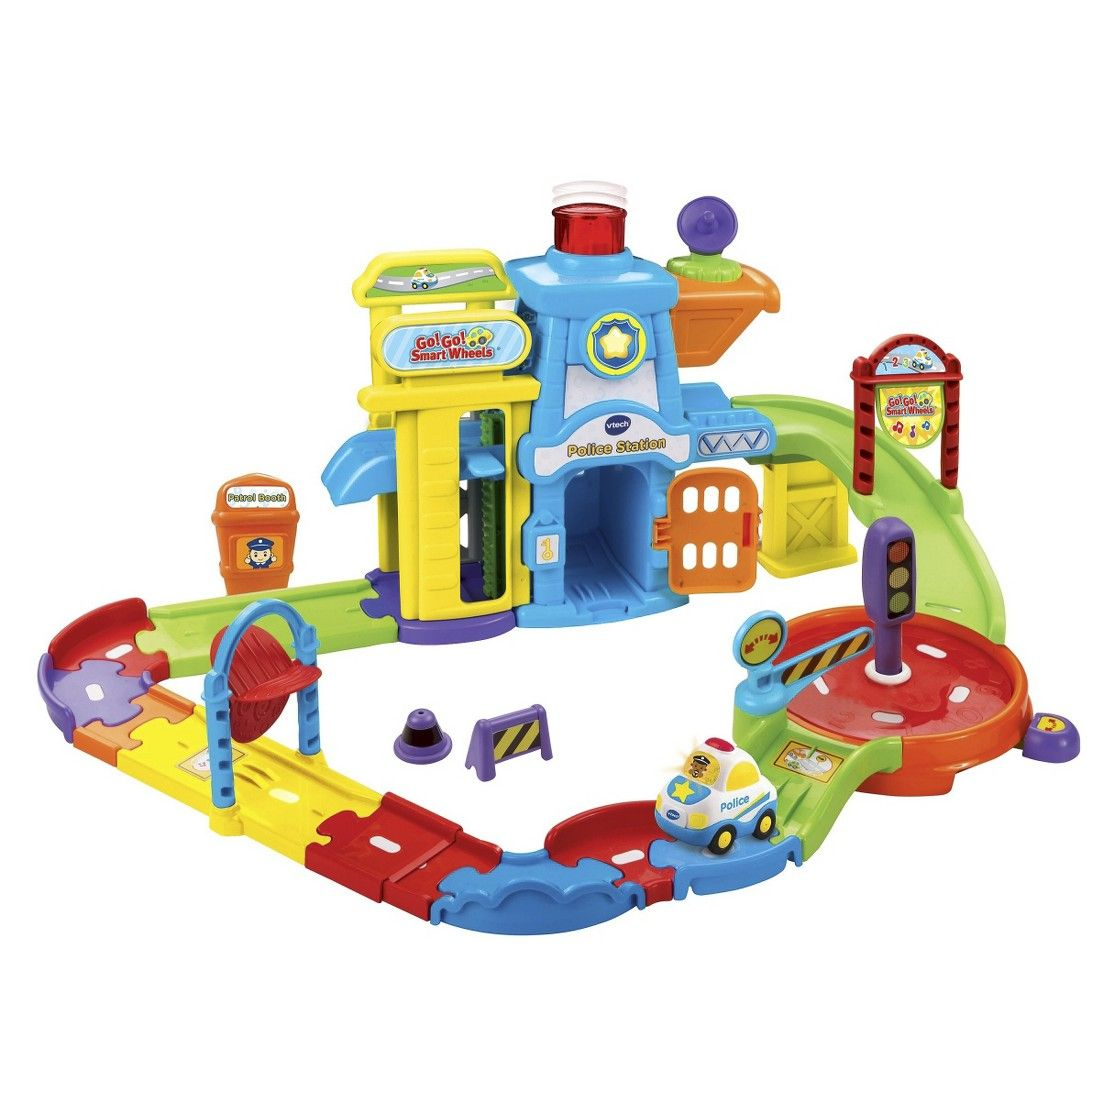 Vtech Go Go Smart Wheels Police Station Playset Playset Police Station Toys For 1 Year Old